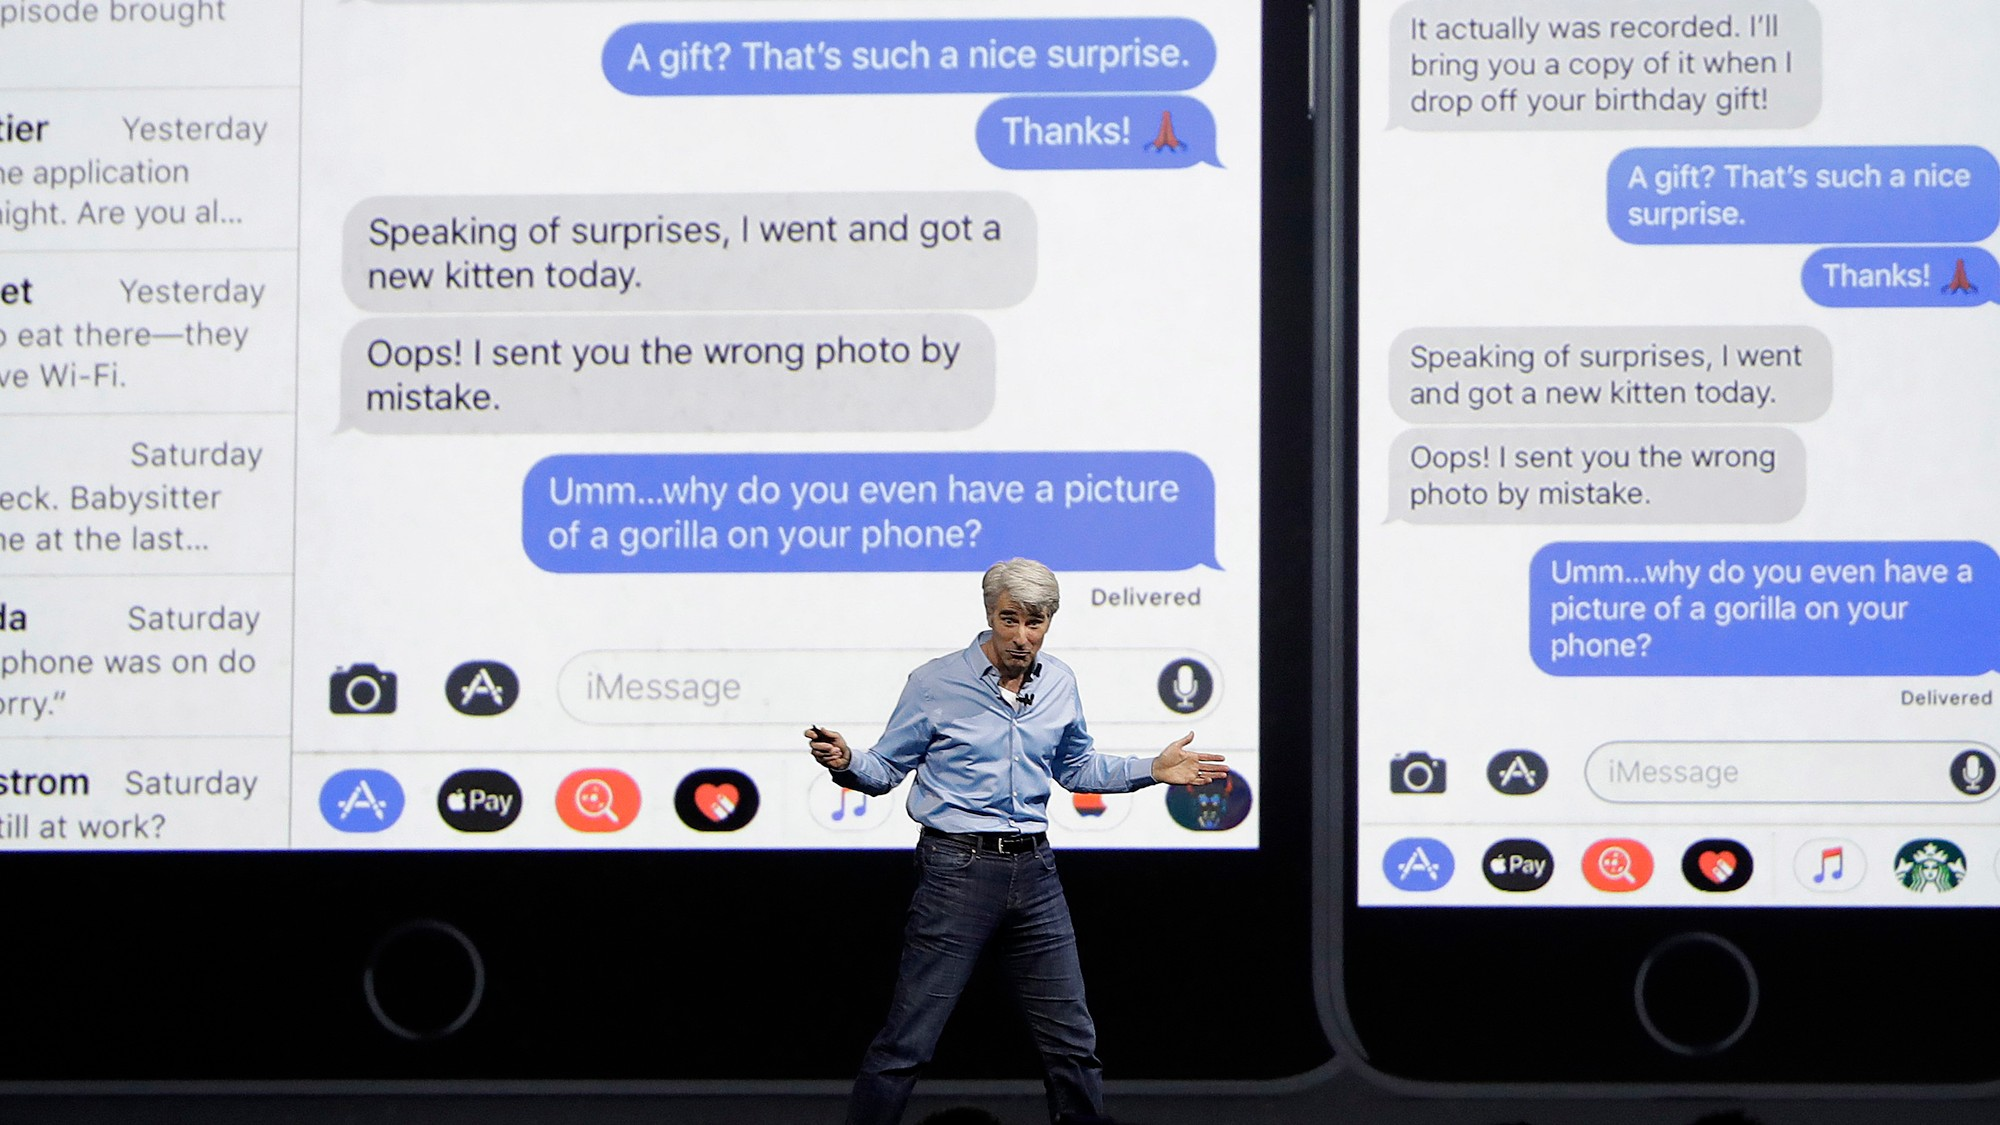 Apple Is Trying To Make Your iMessages Even More Private - VICE